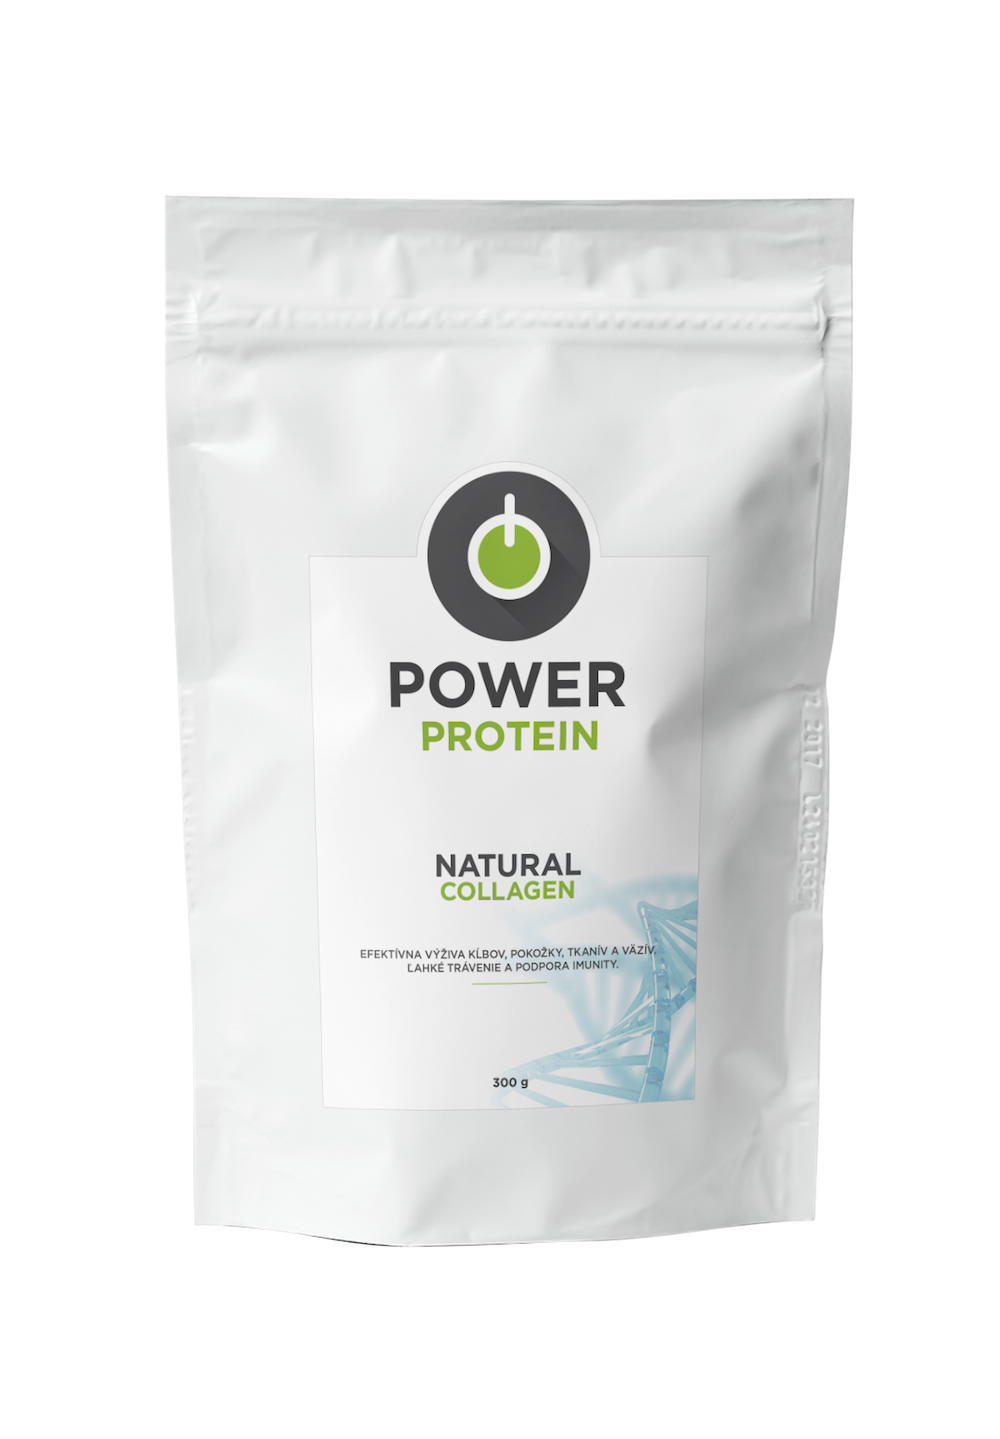 Natural Collagen Protein 300g